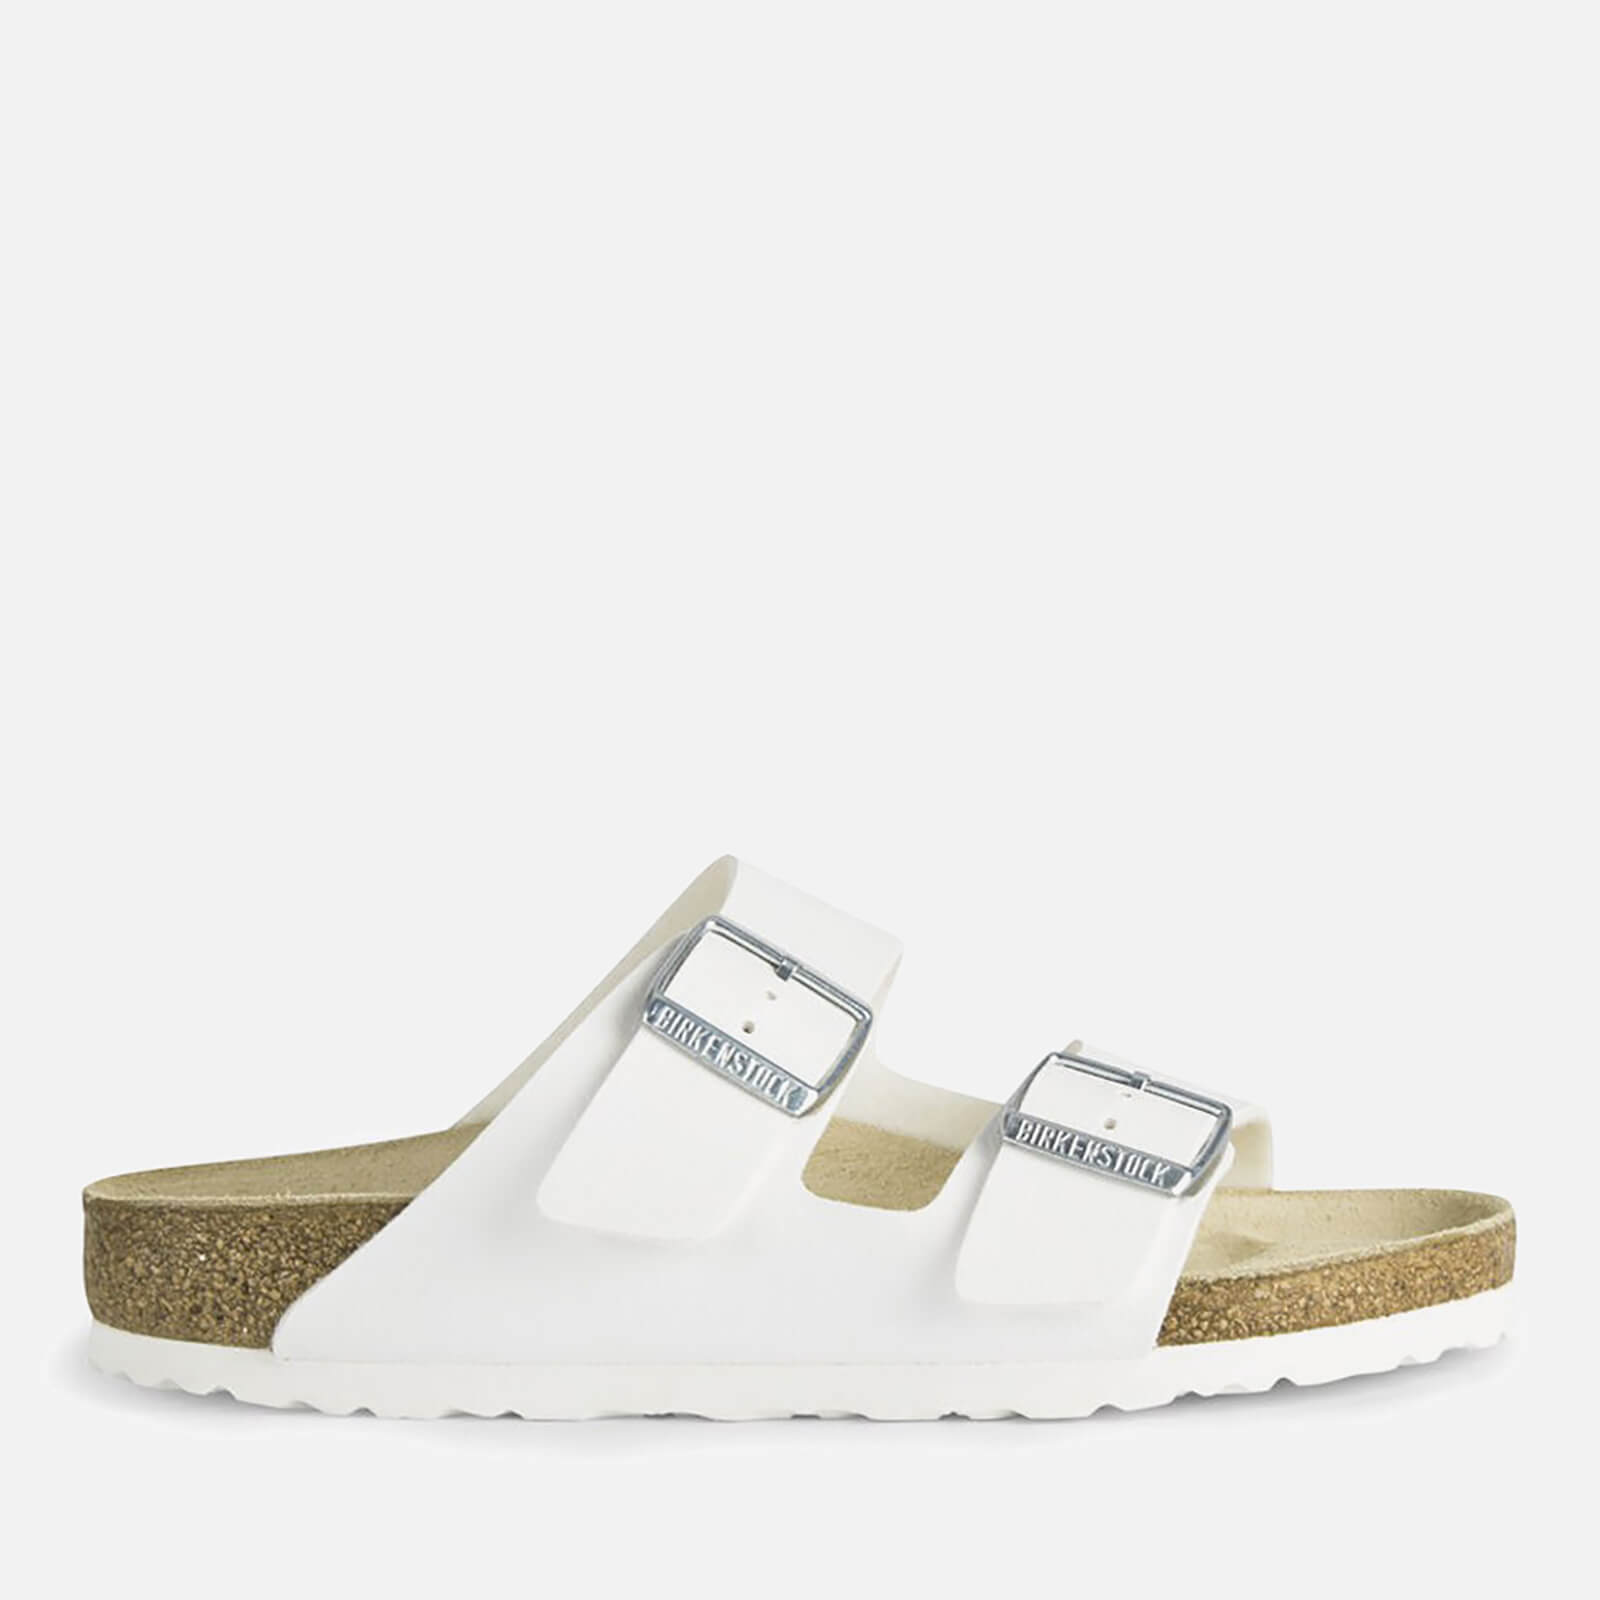 Birkenstock Women's Arizona Slim Fit Double Strap Sandals - White - EU 40/UK 7